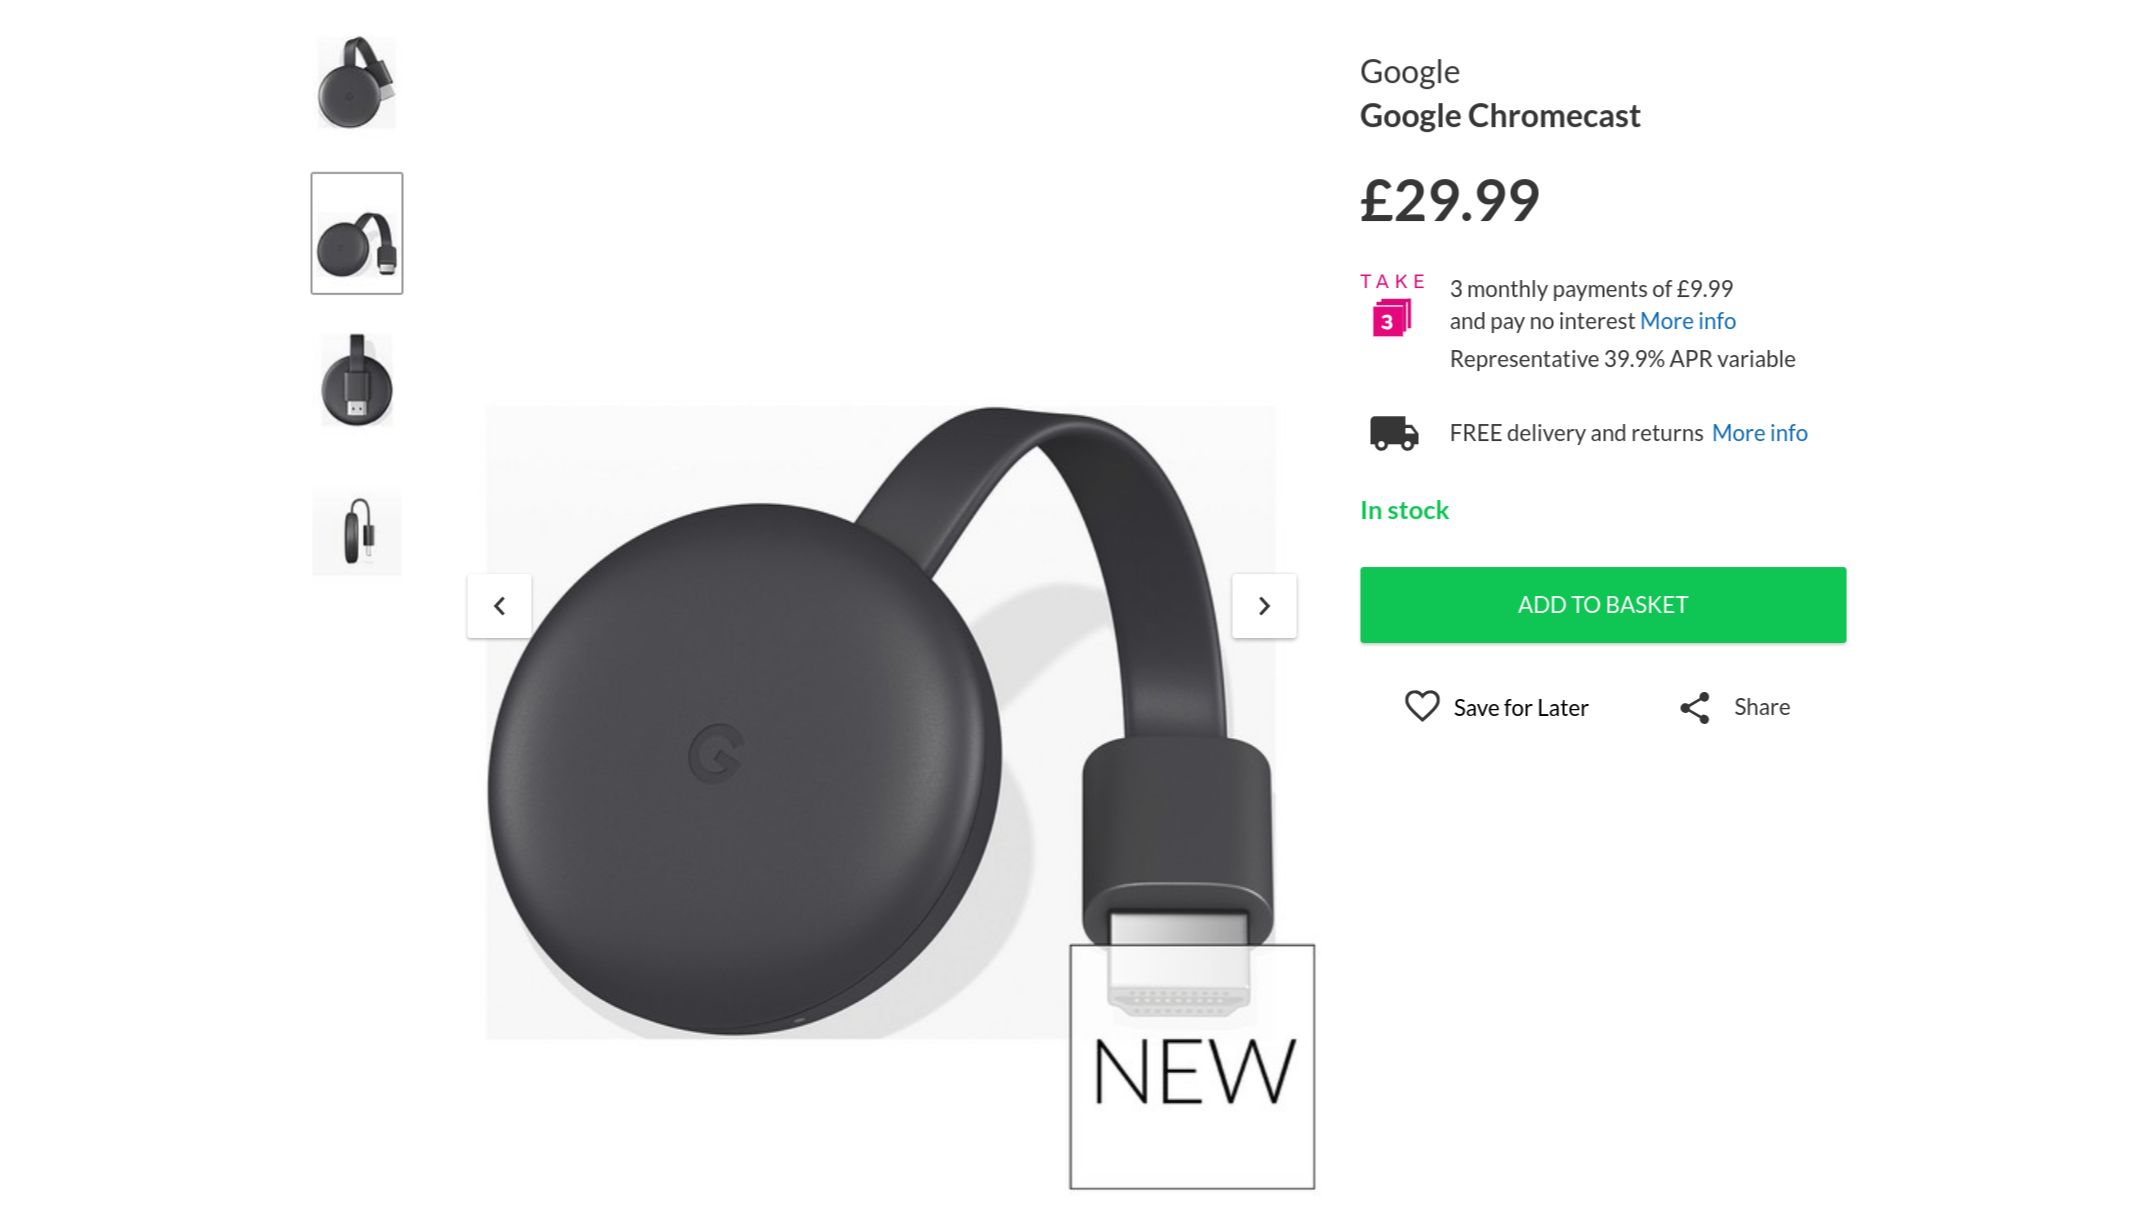 New Chromecast Costs Same $35, Comes in Chalk and Charcoal